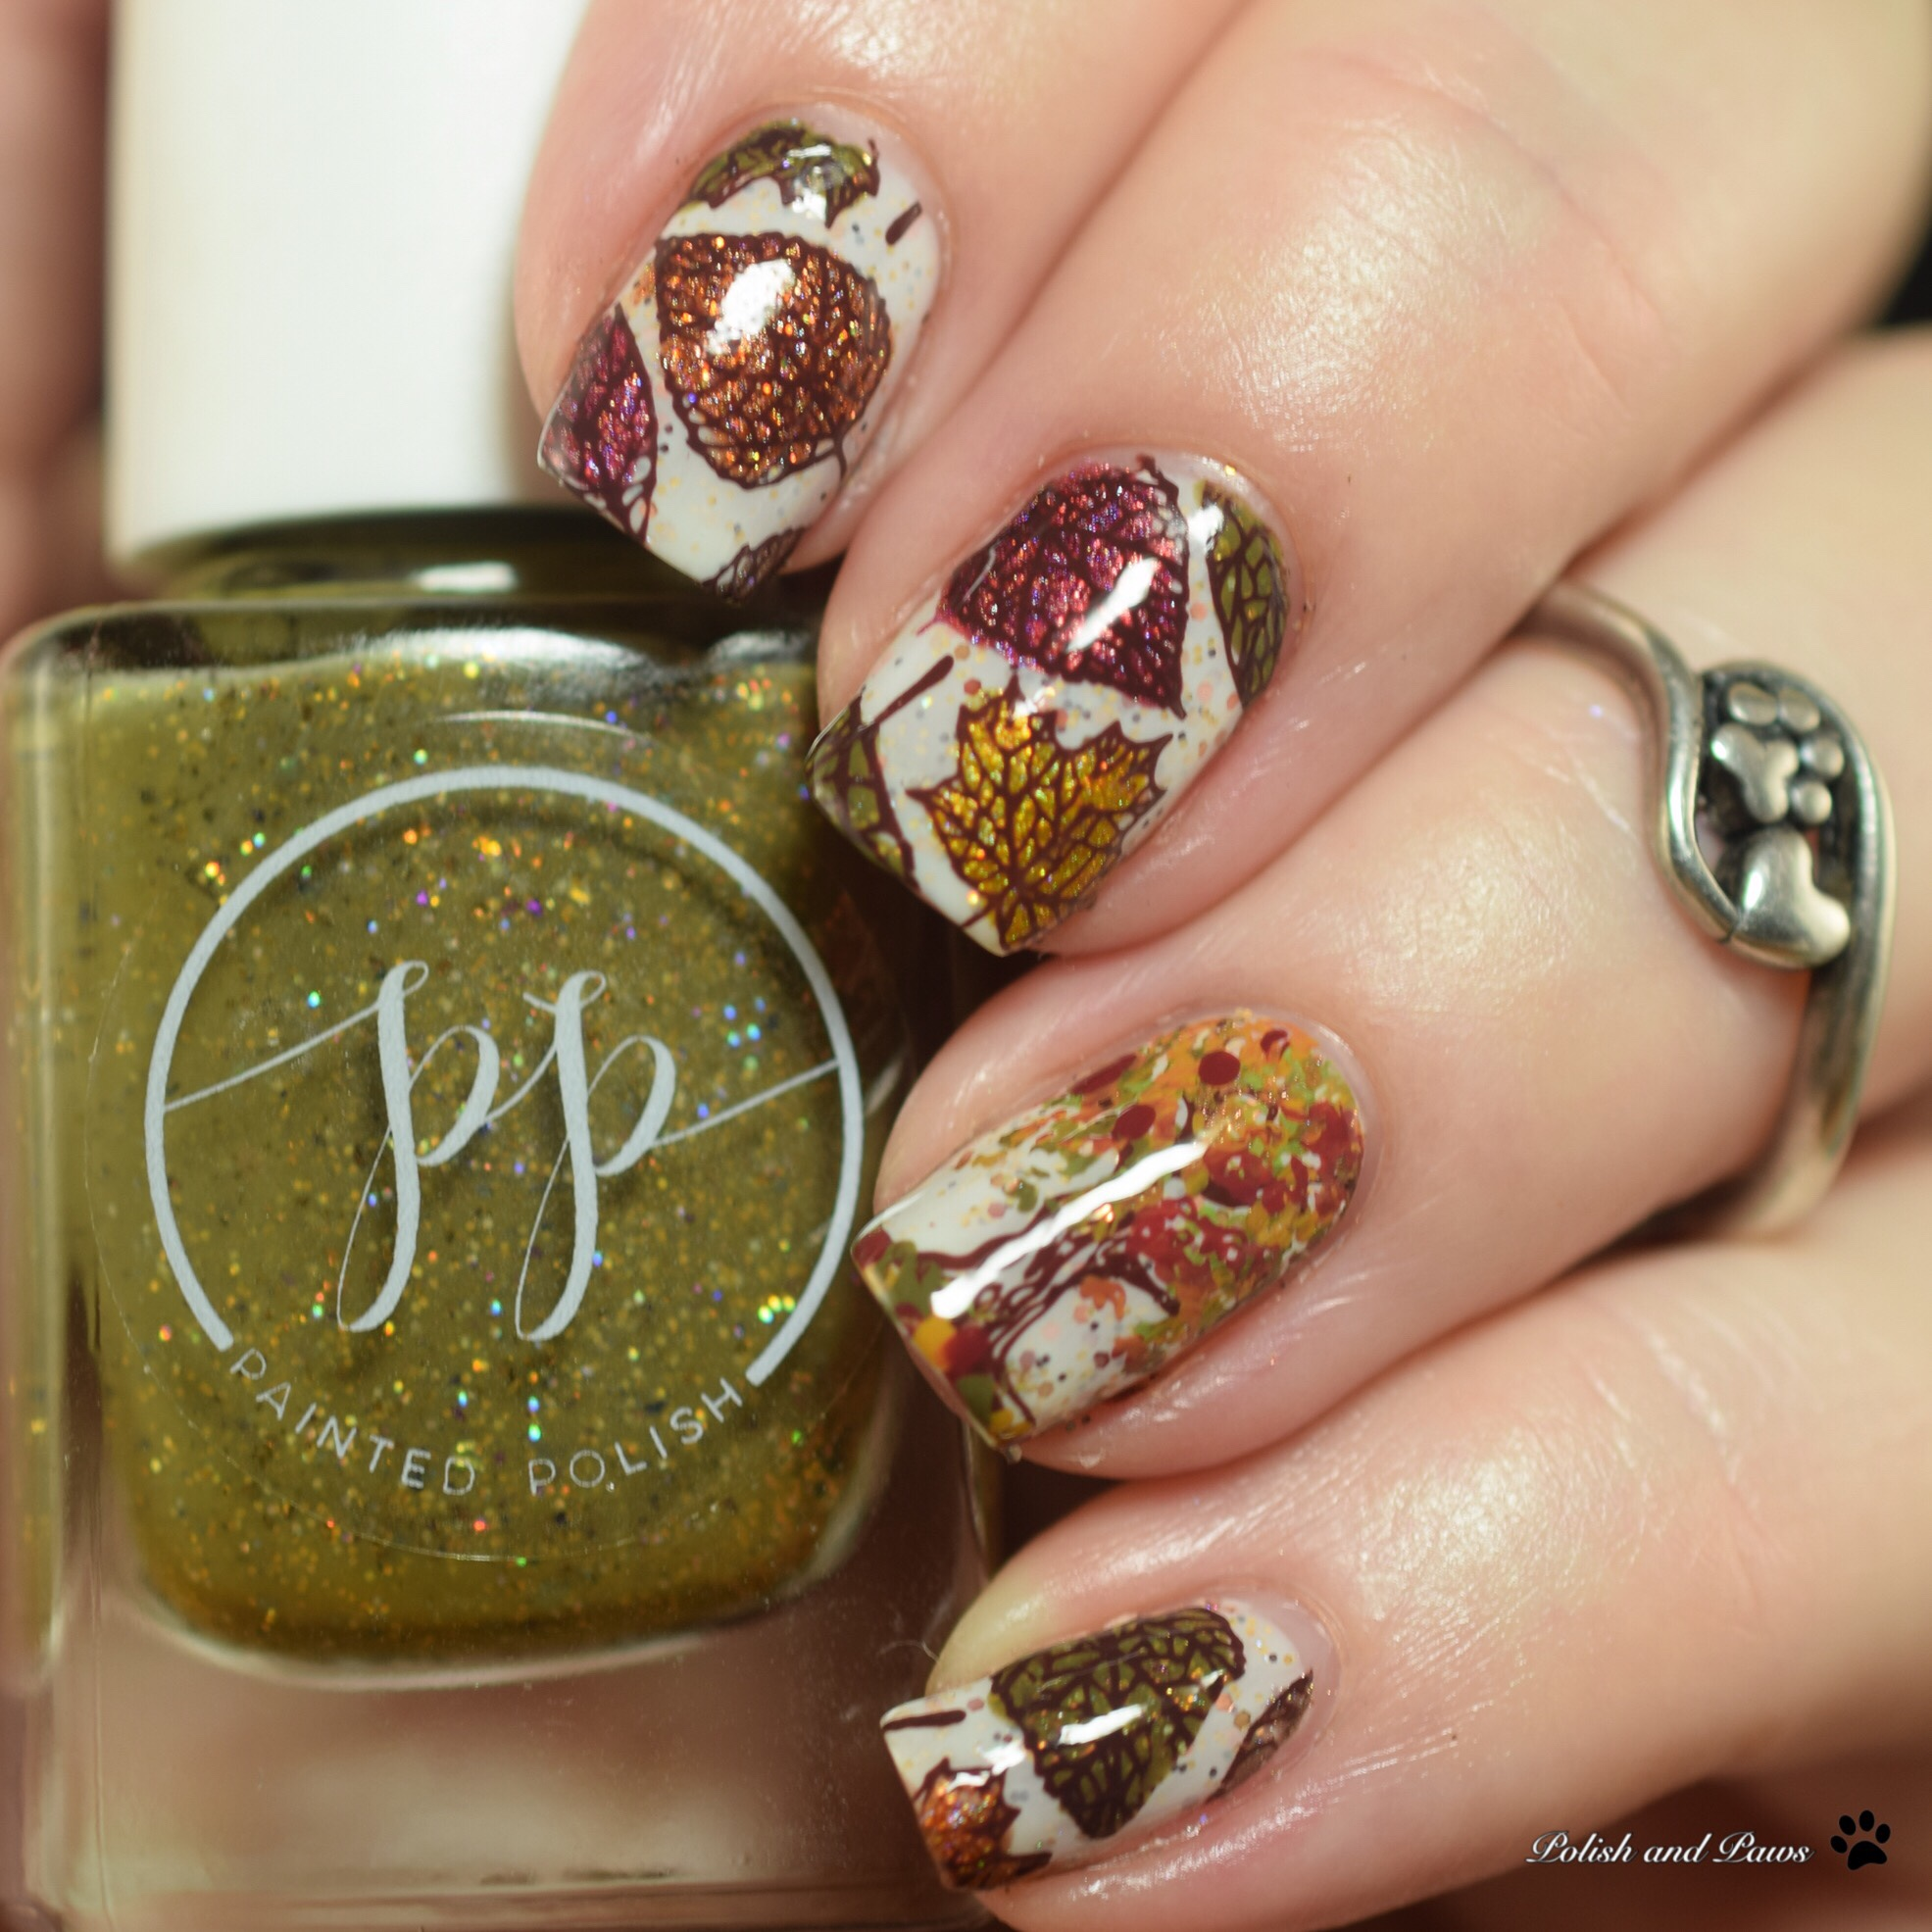 Digital Dozen Polish and Paws Fall Nail Art Manicure